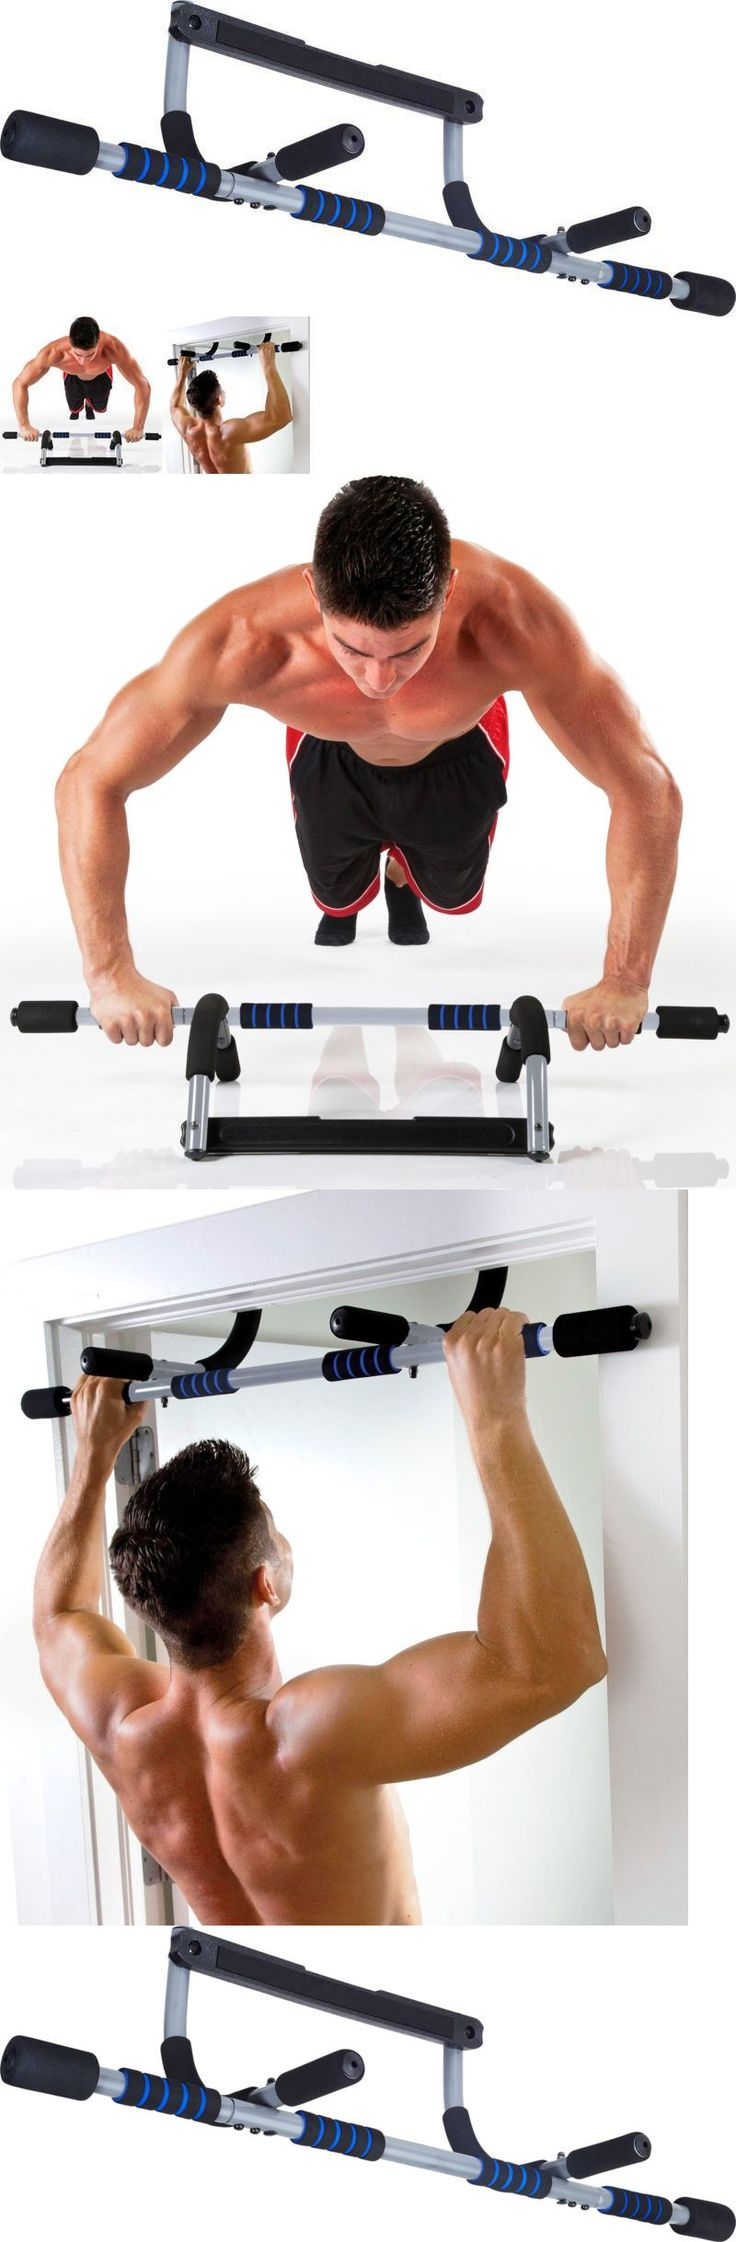 Pull Up Bars 179816: Pull Up Bar Doorway Door Mount Workout Exercise Chin Push Up Portable Home Gym -> BUY IT NOW ONLY: $32.85 on eBay!